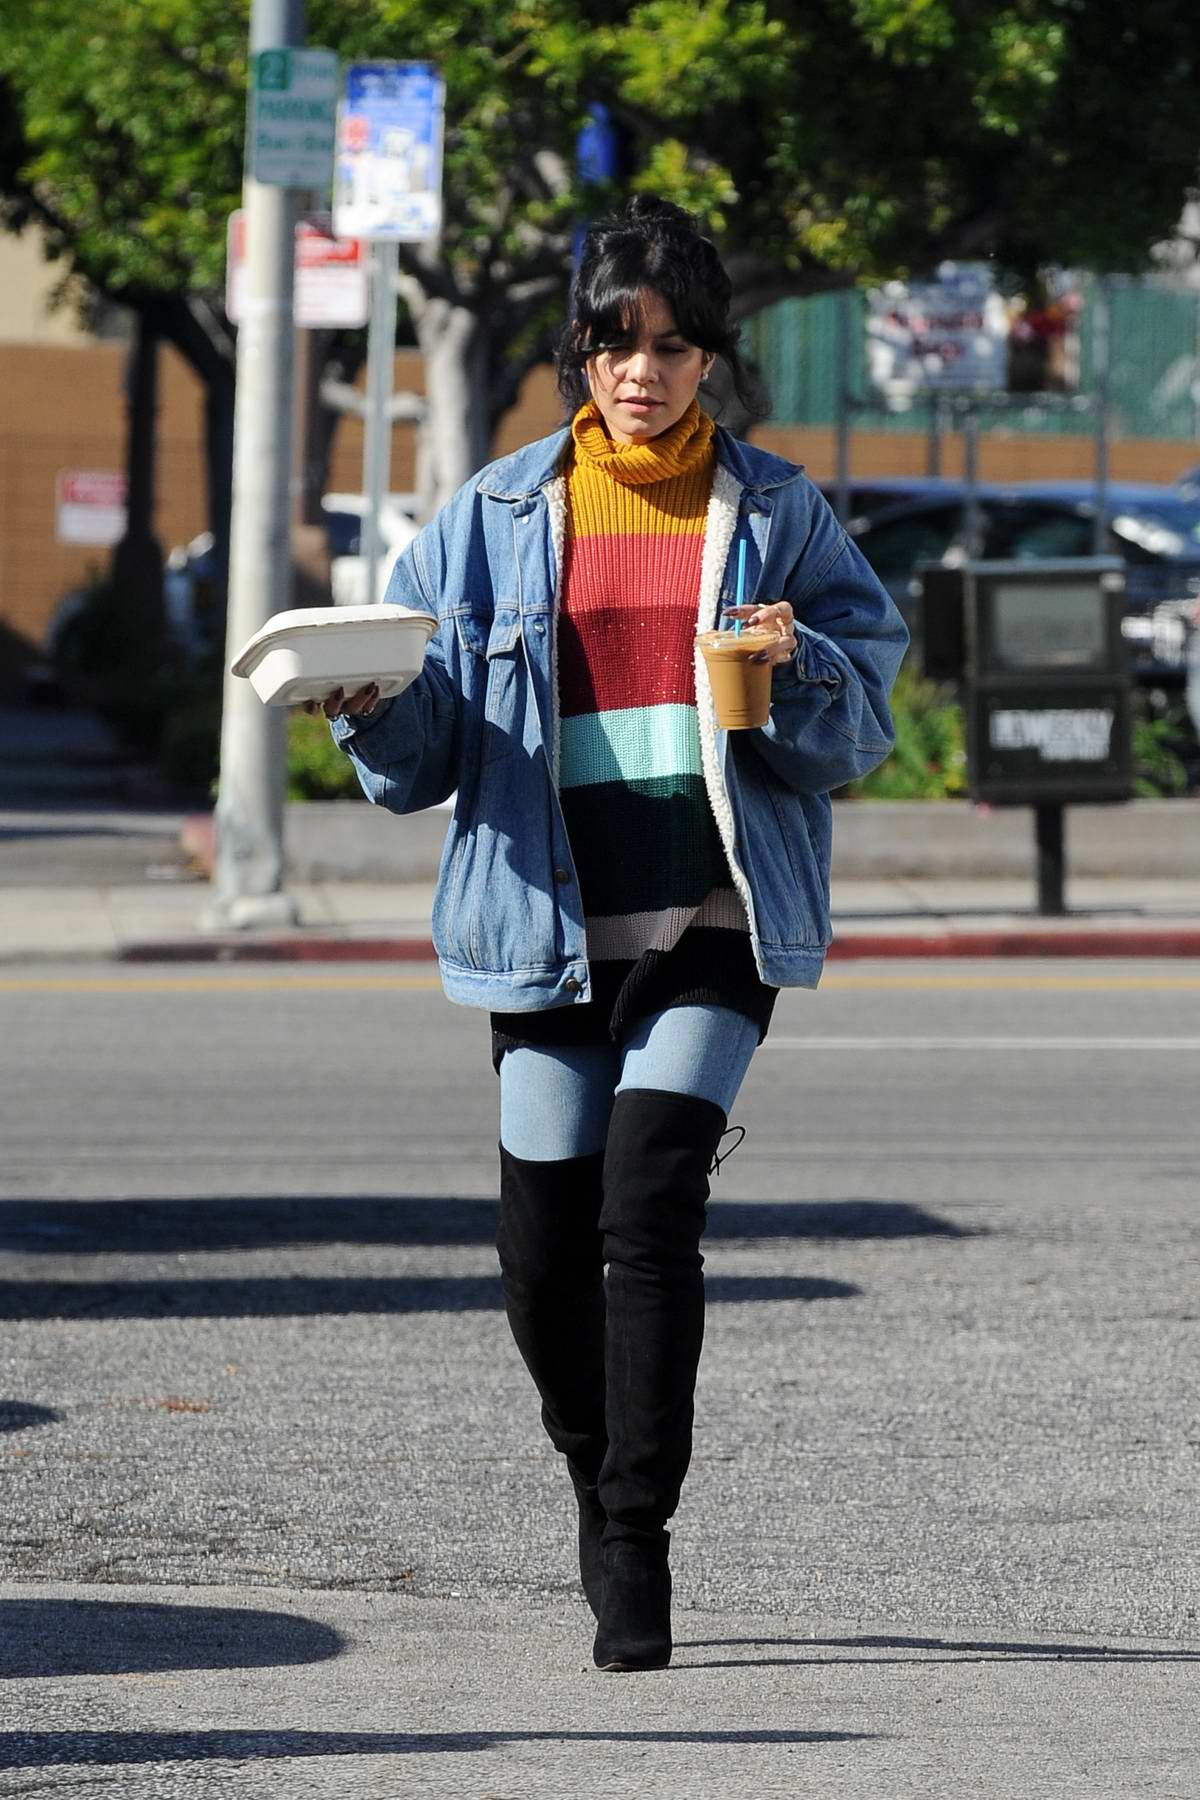 Vanessa Hudgens rocked a colorful striped sweater and thigh high boots while picking up coffee and snacks at Blue Bottle Coffee in Los Angeles